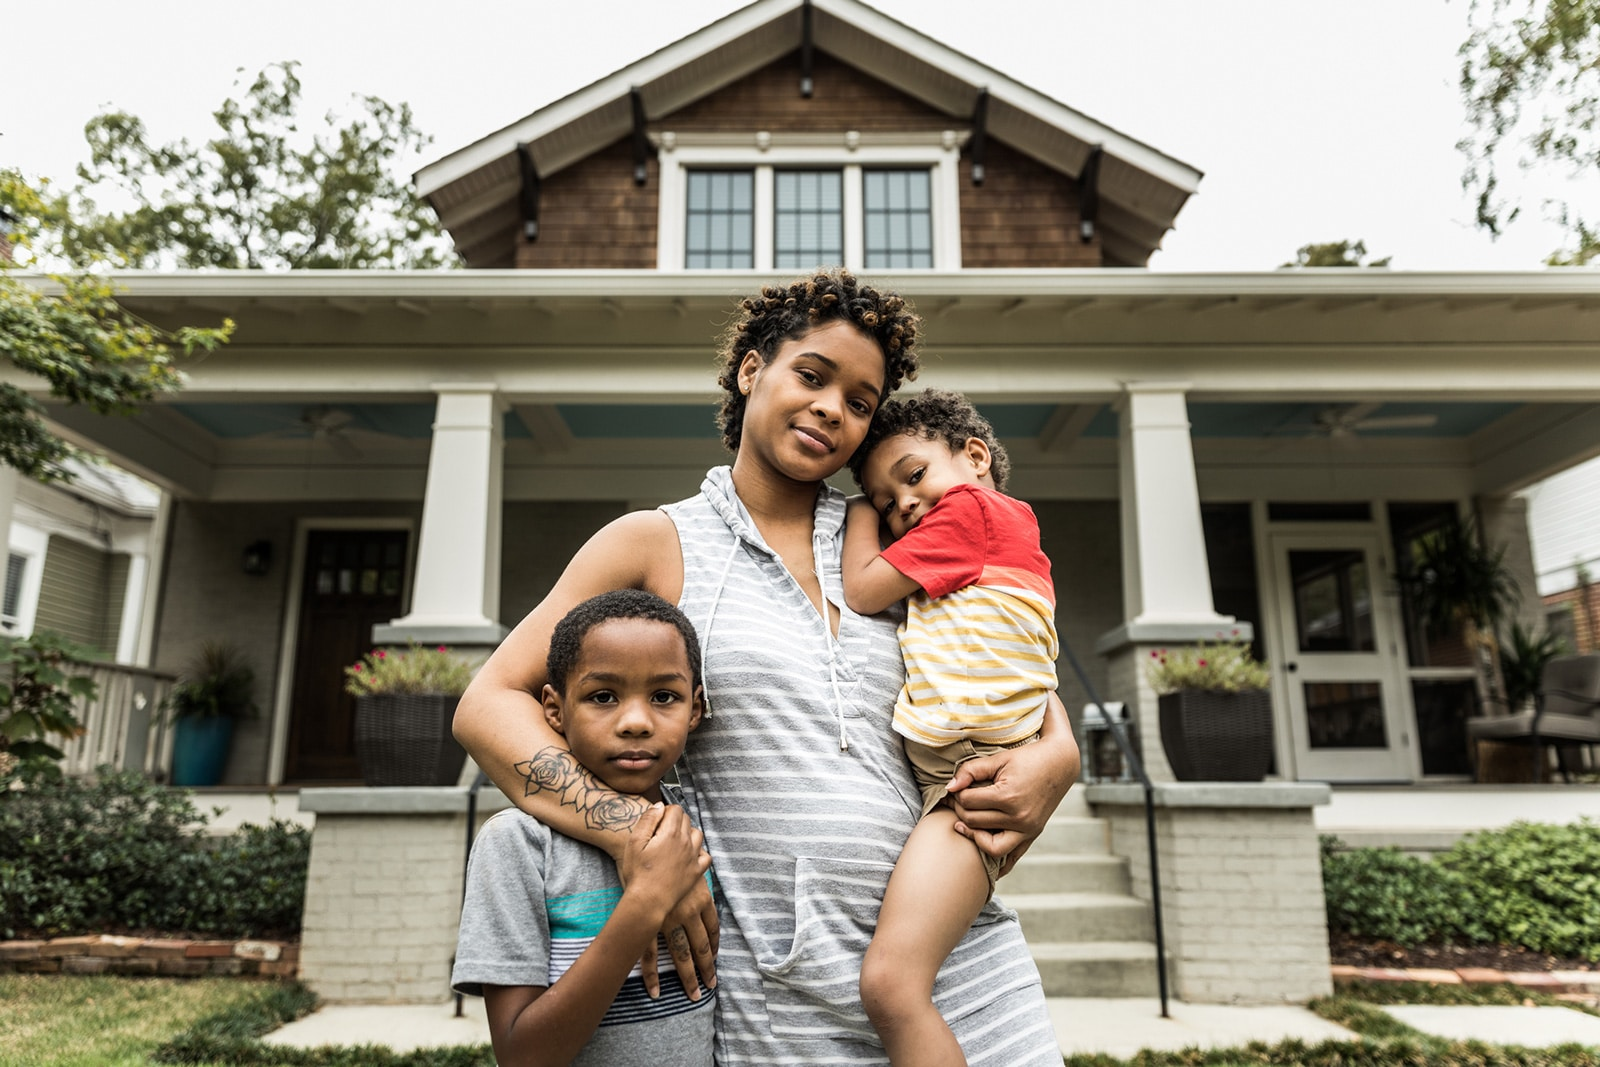 Woman with children in front of home